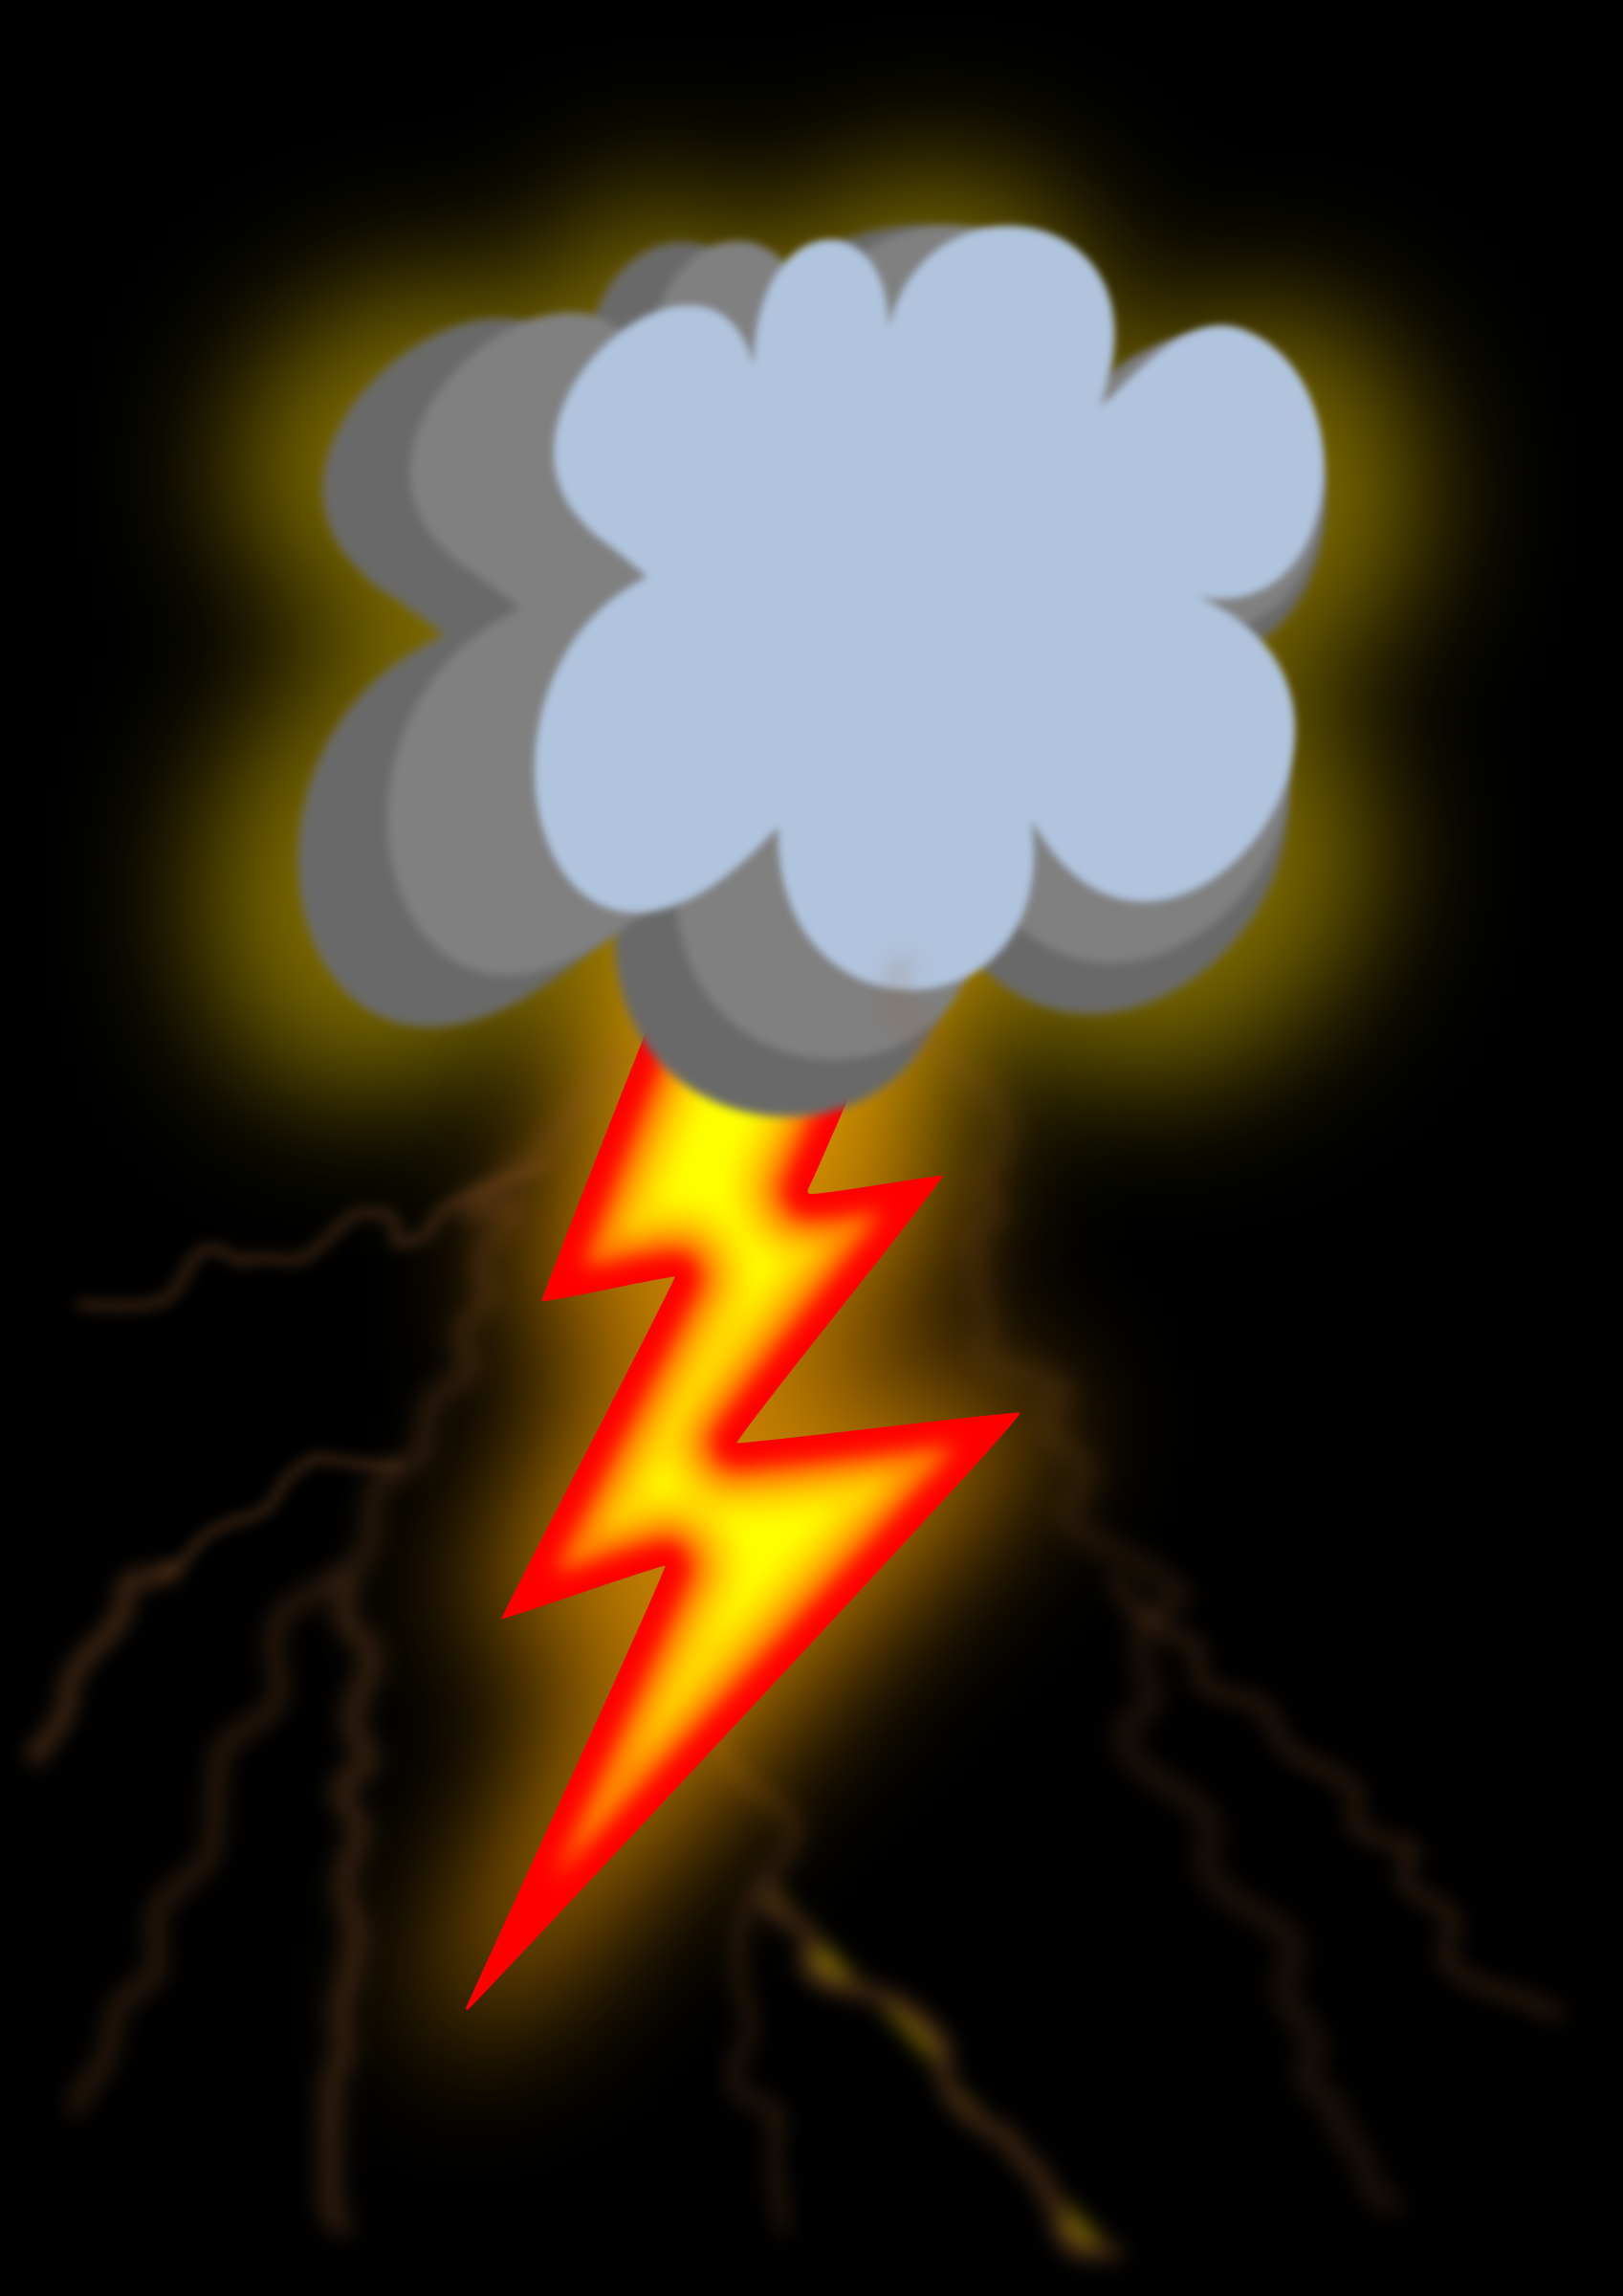 Thunder - Daily Sketch Challenge (#dailysketch)  by Almeidah